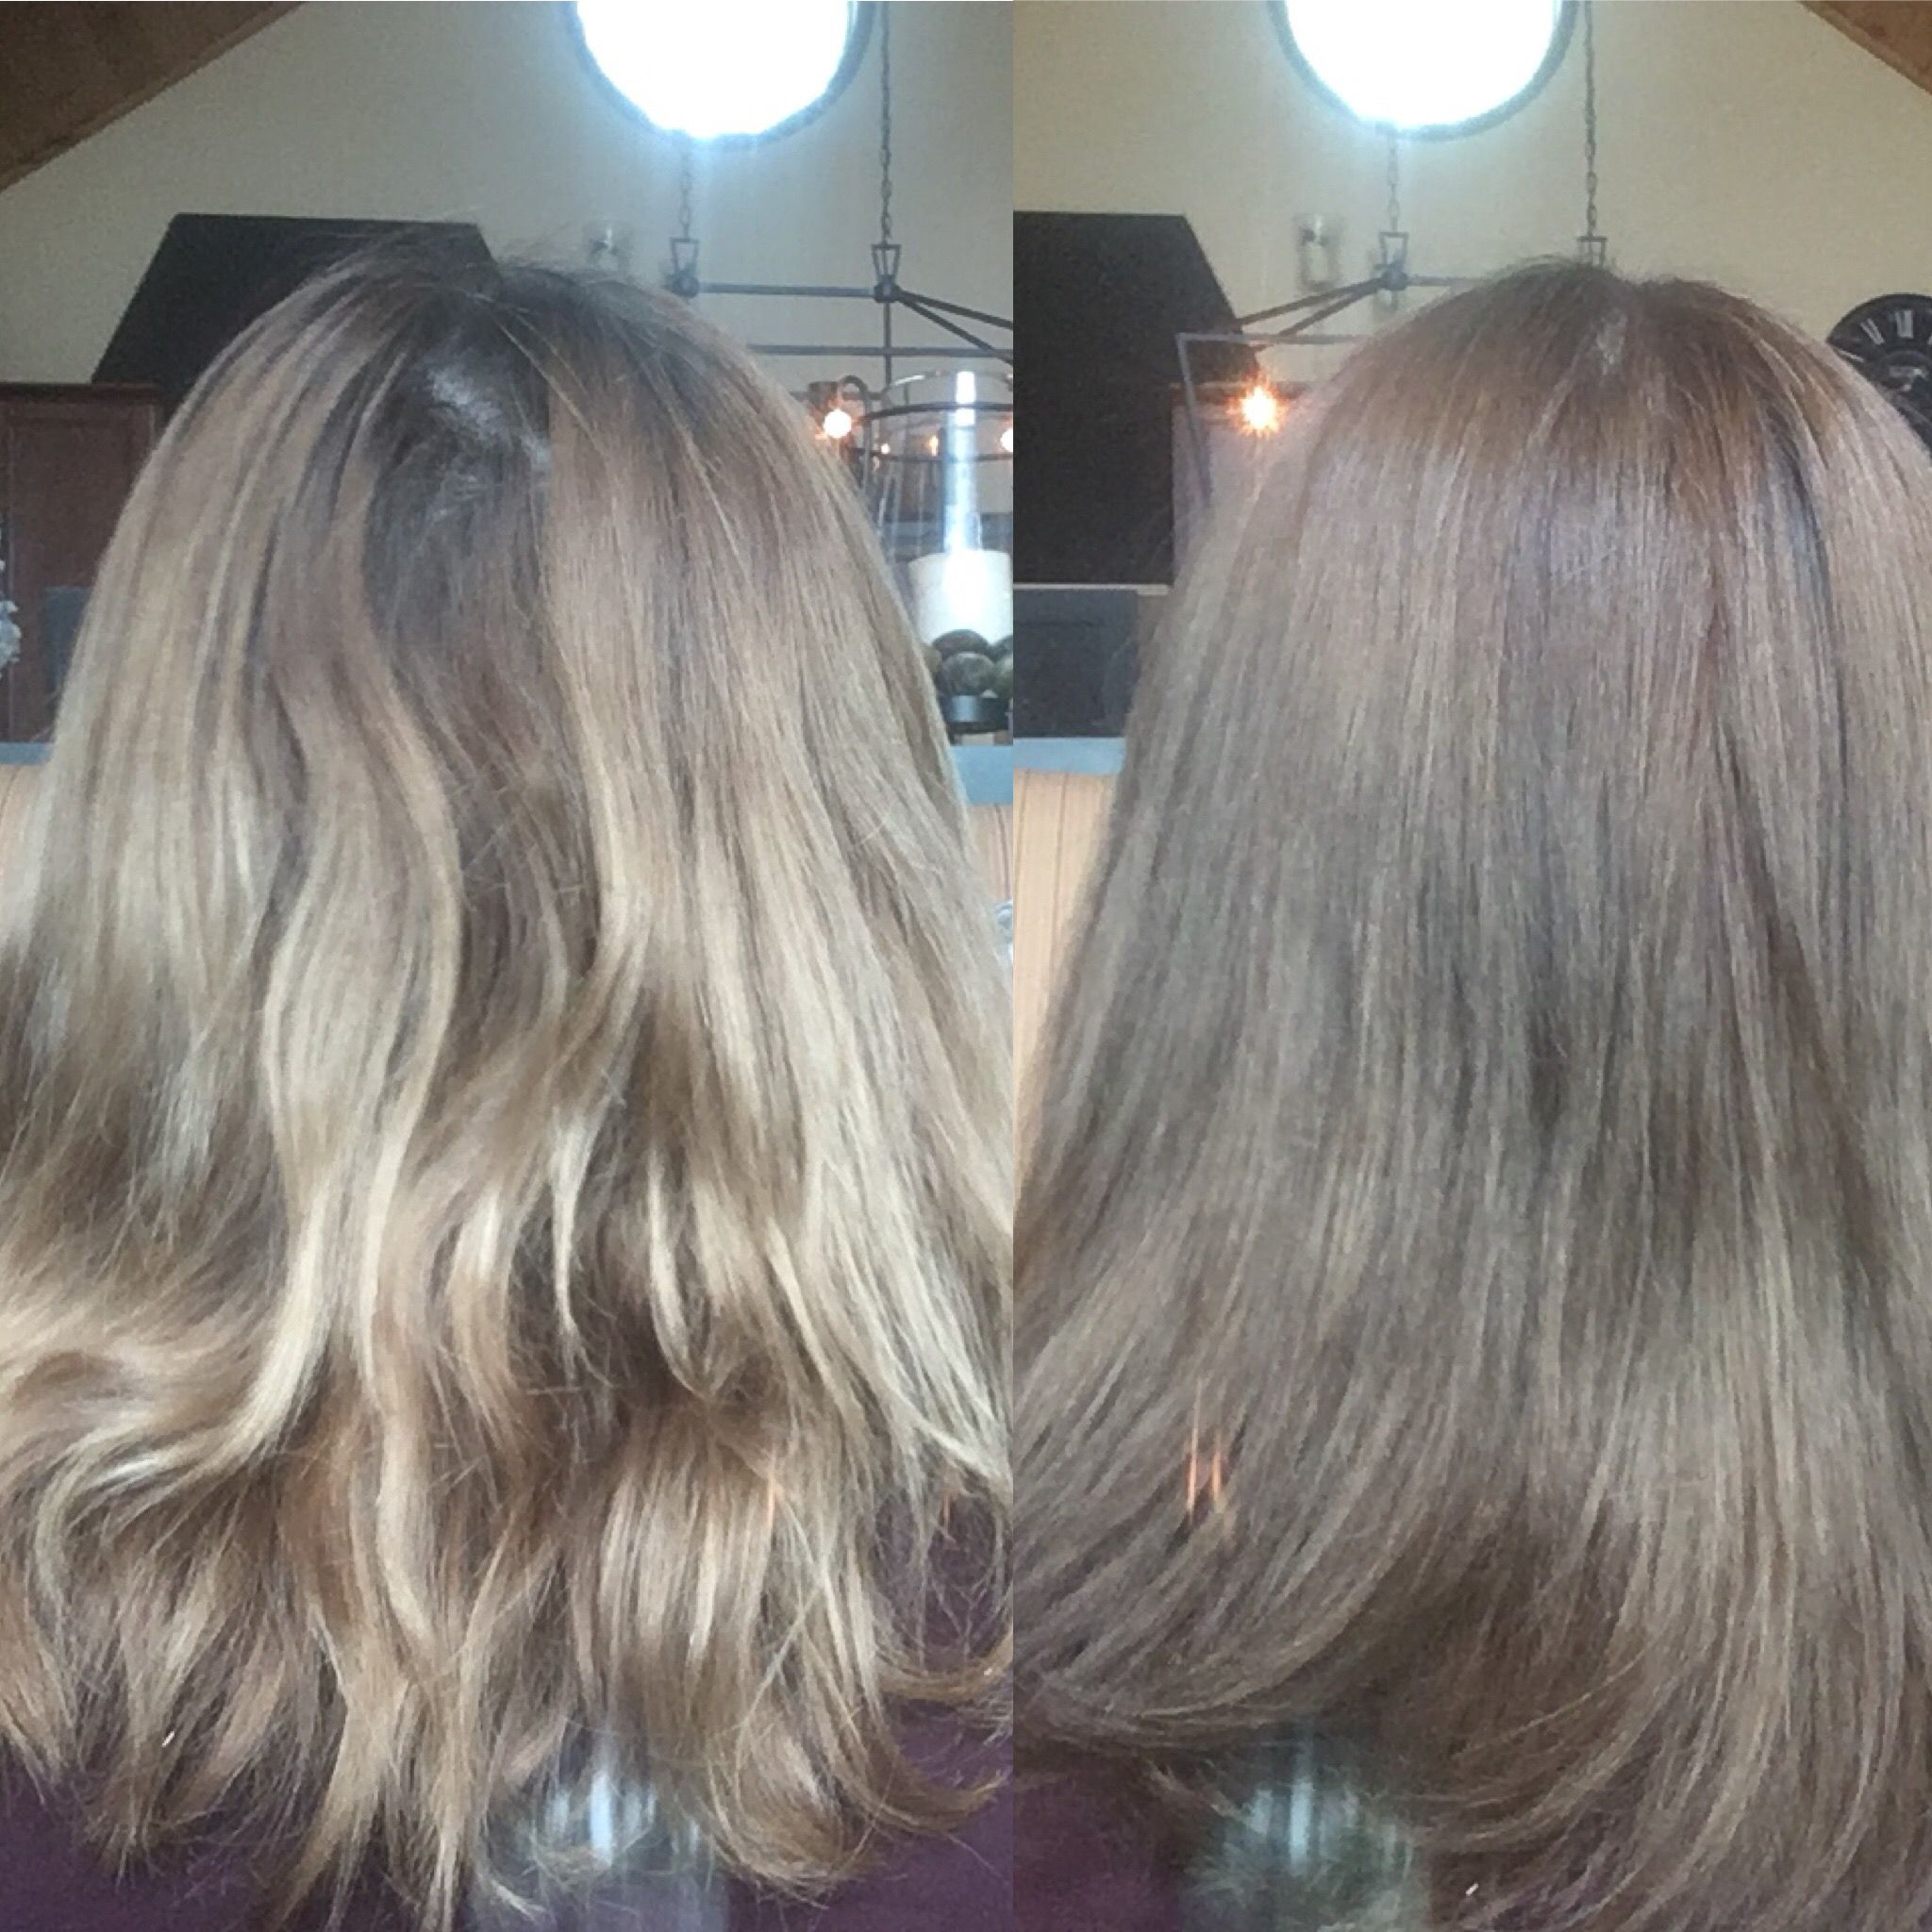 Before And After Wella Colour Gel Permanent Dye 7a672 Medium Smokey Ash Blonde Medium Blonde Hair Wella Hair Color Mousy Brown Hair